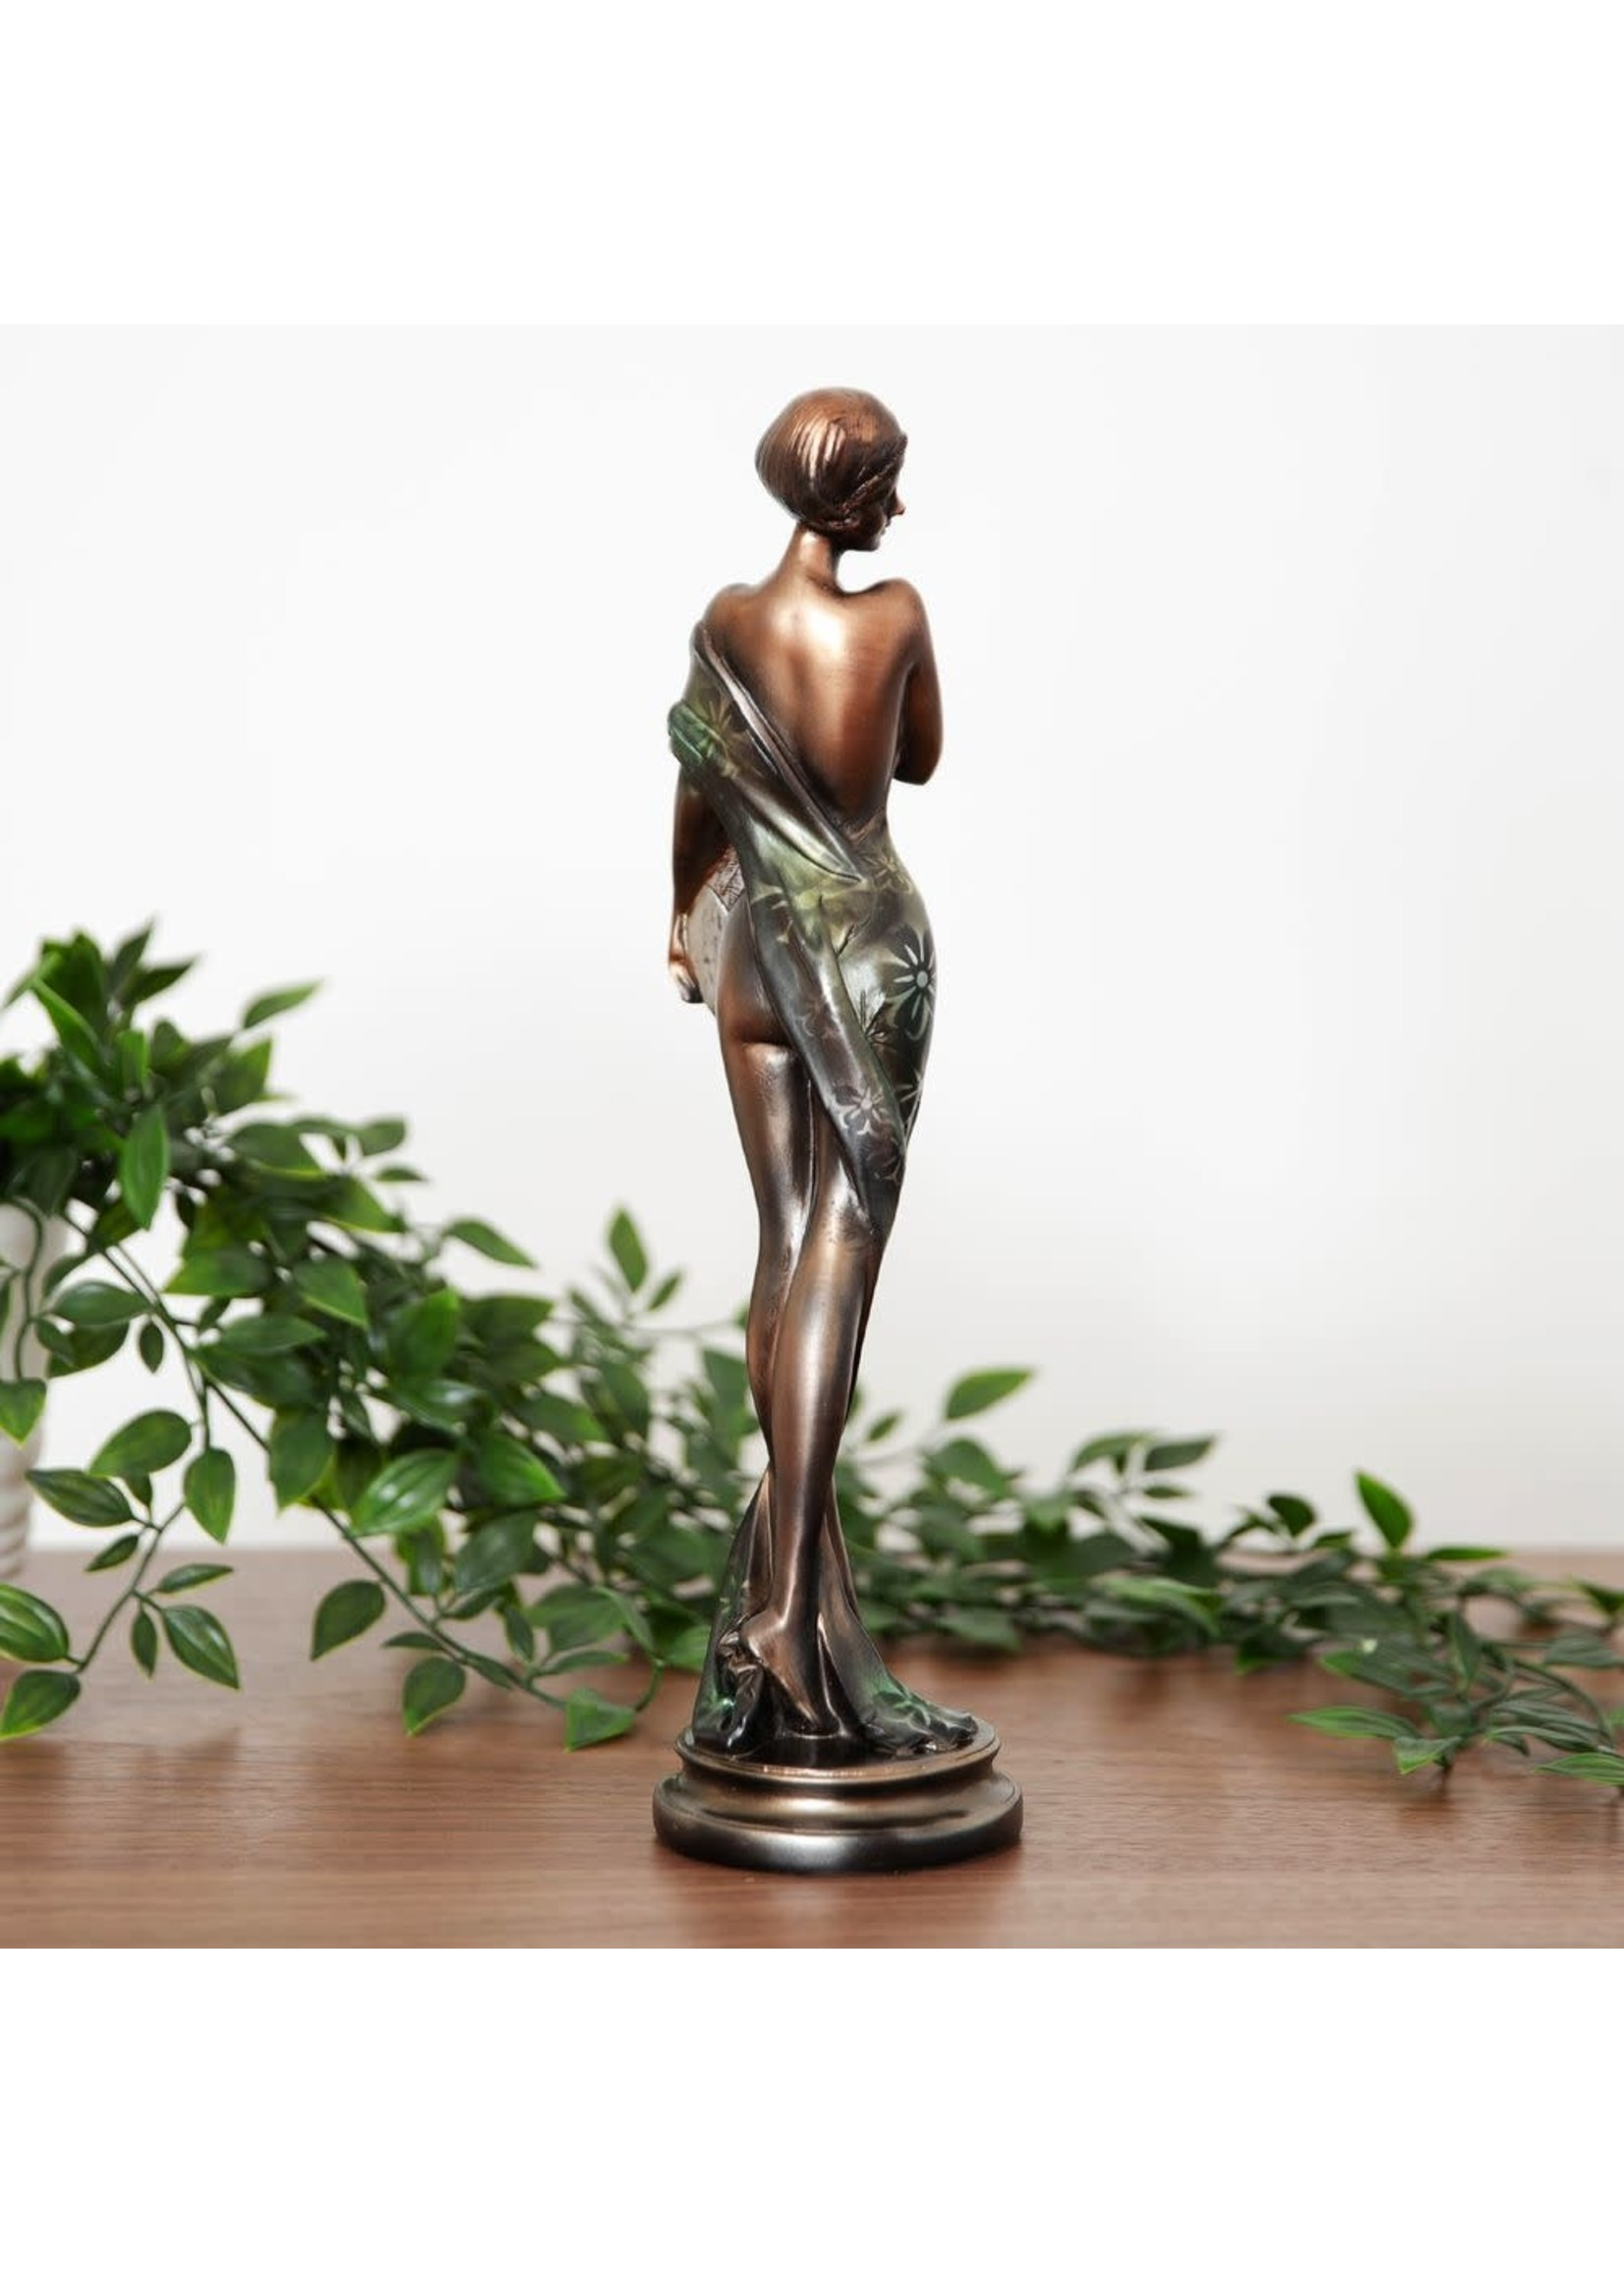 SILHOUETTE COLLECTION LADY FIGURINE BRONZE & GREEN 32.5CM